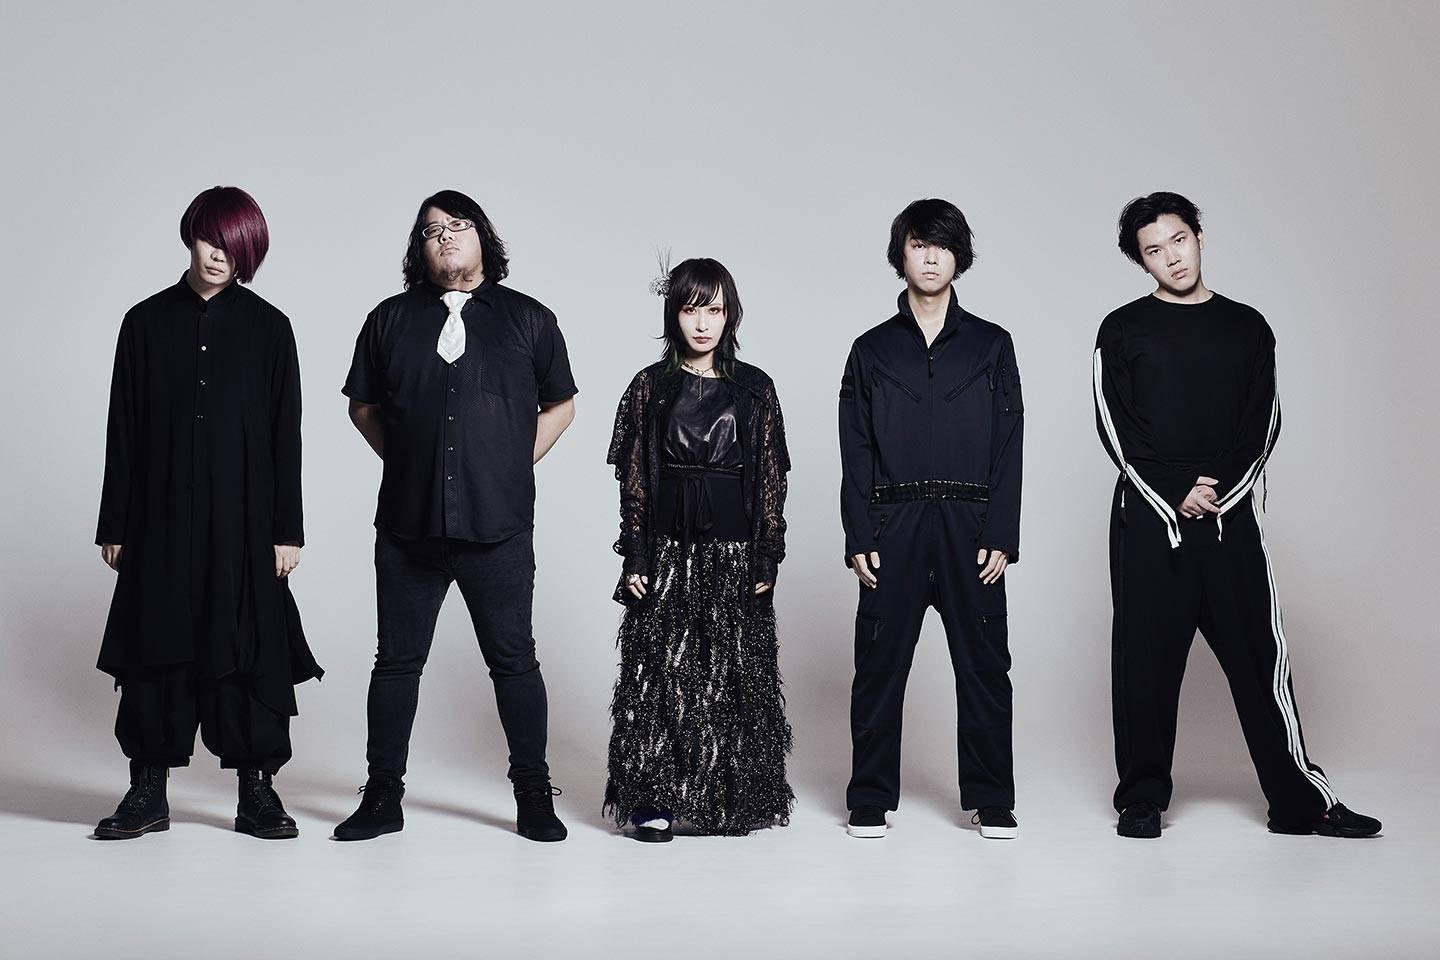 Lie and a Chameleon band (嘘とカメレオン)